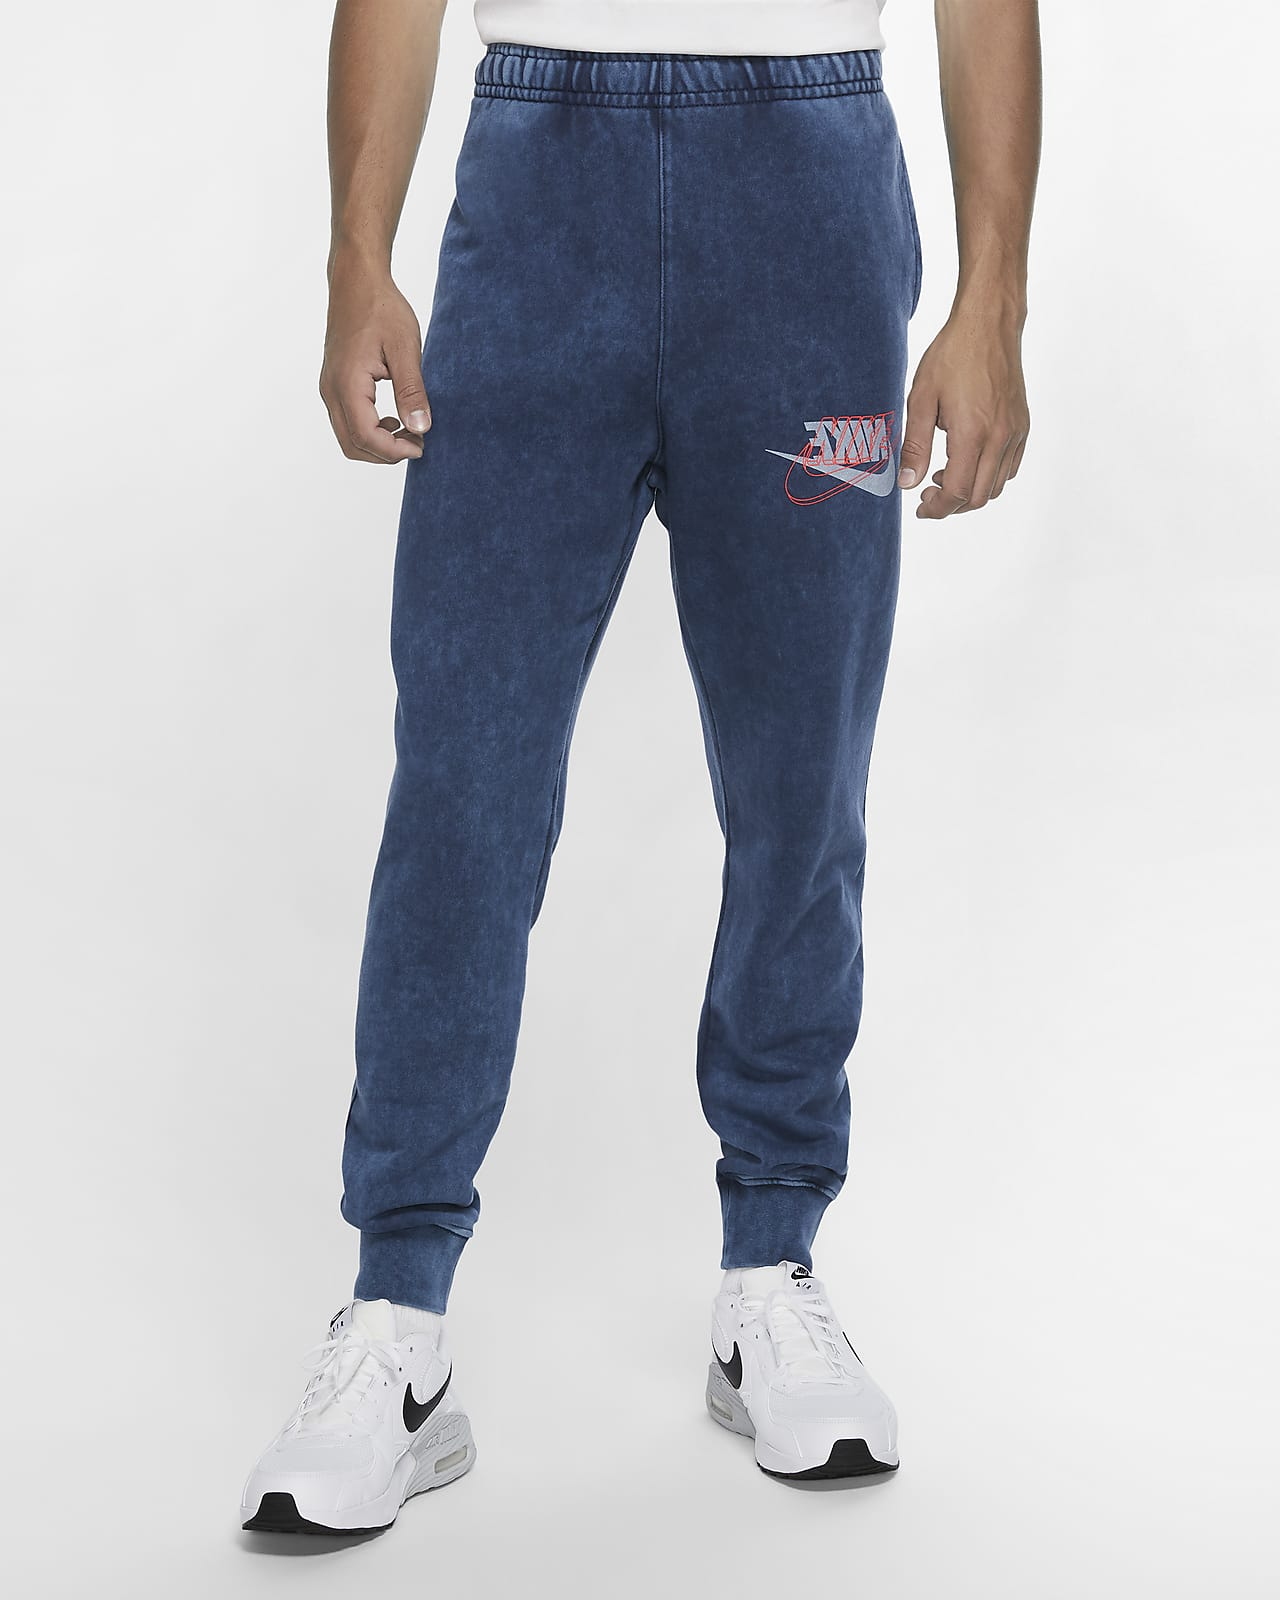 Nike Sportswear Men's French Terry Joggers